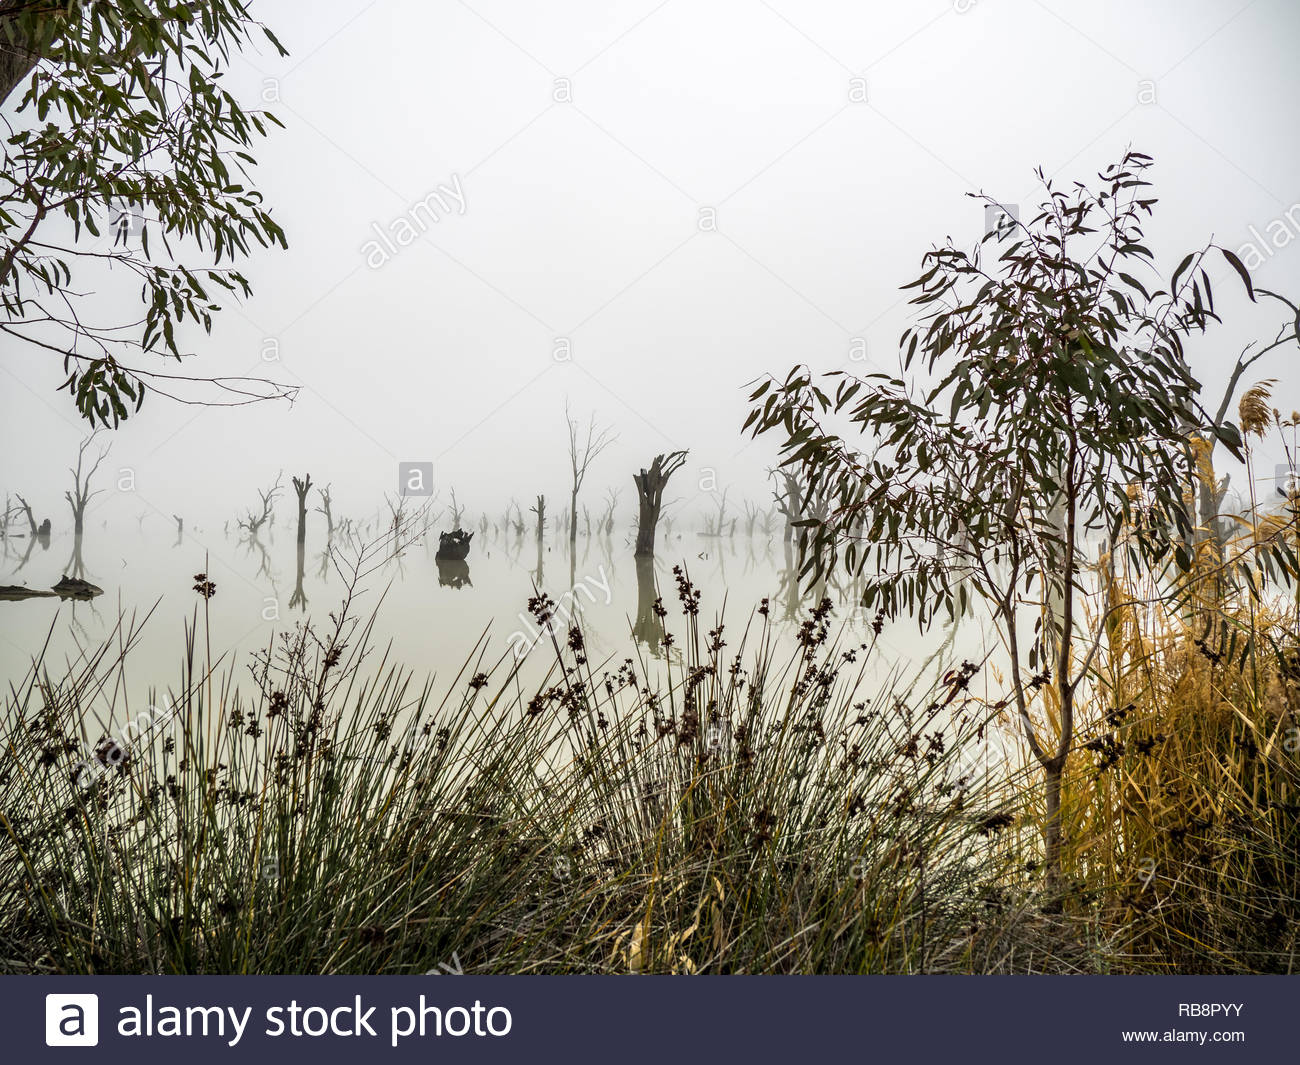 Cobby Causeway fog with dead trees, reflections and grasses. - Stock Image